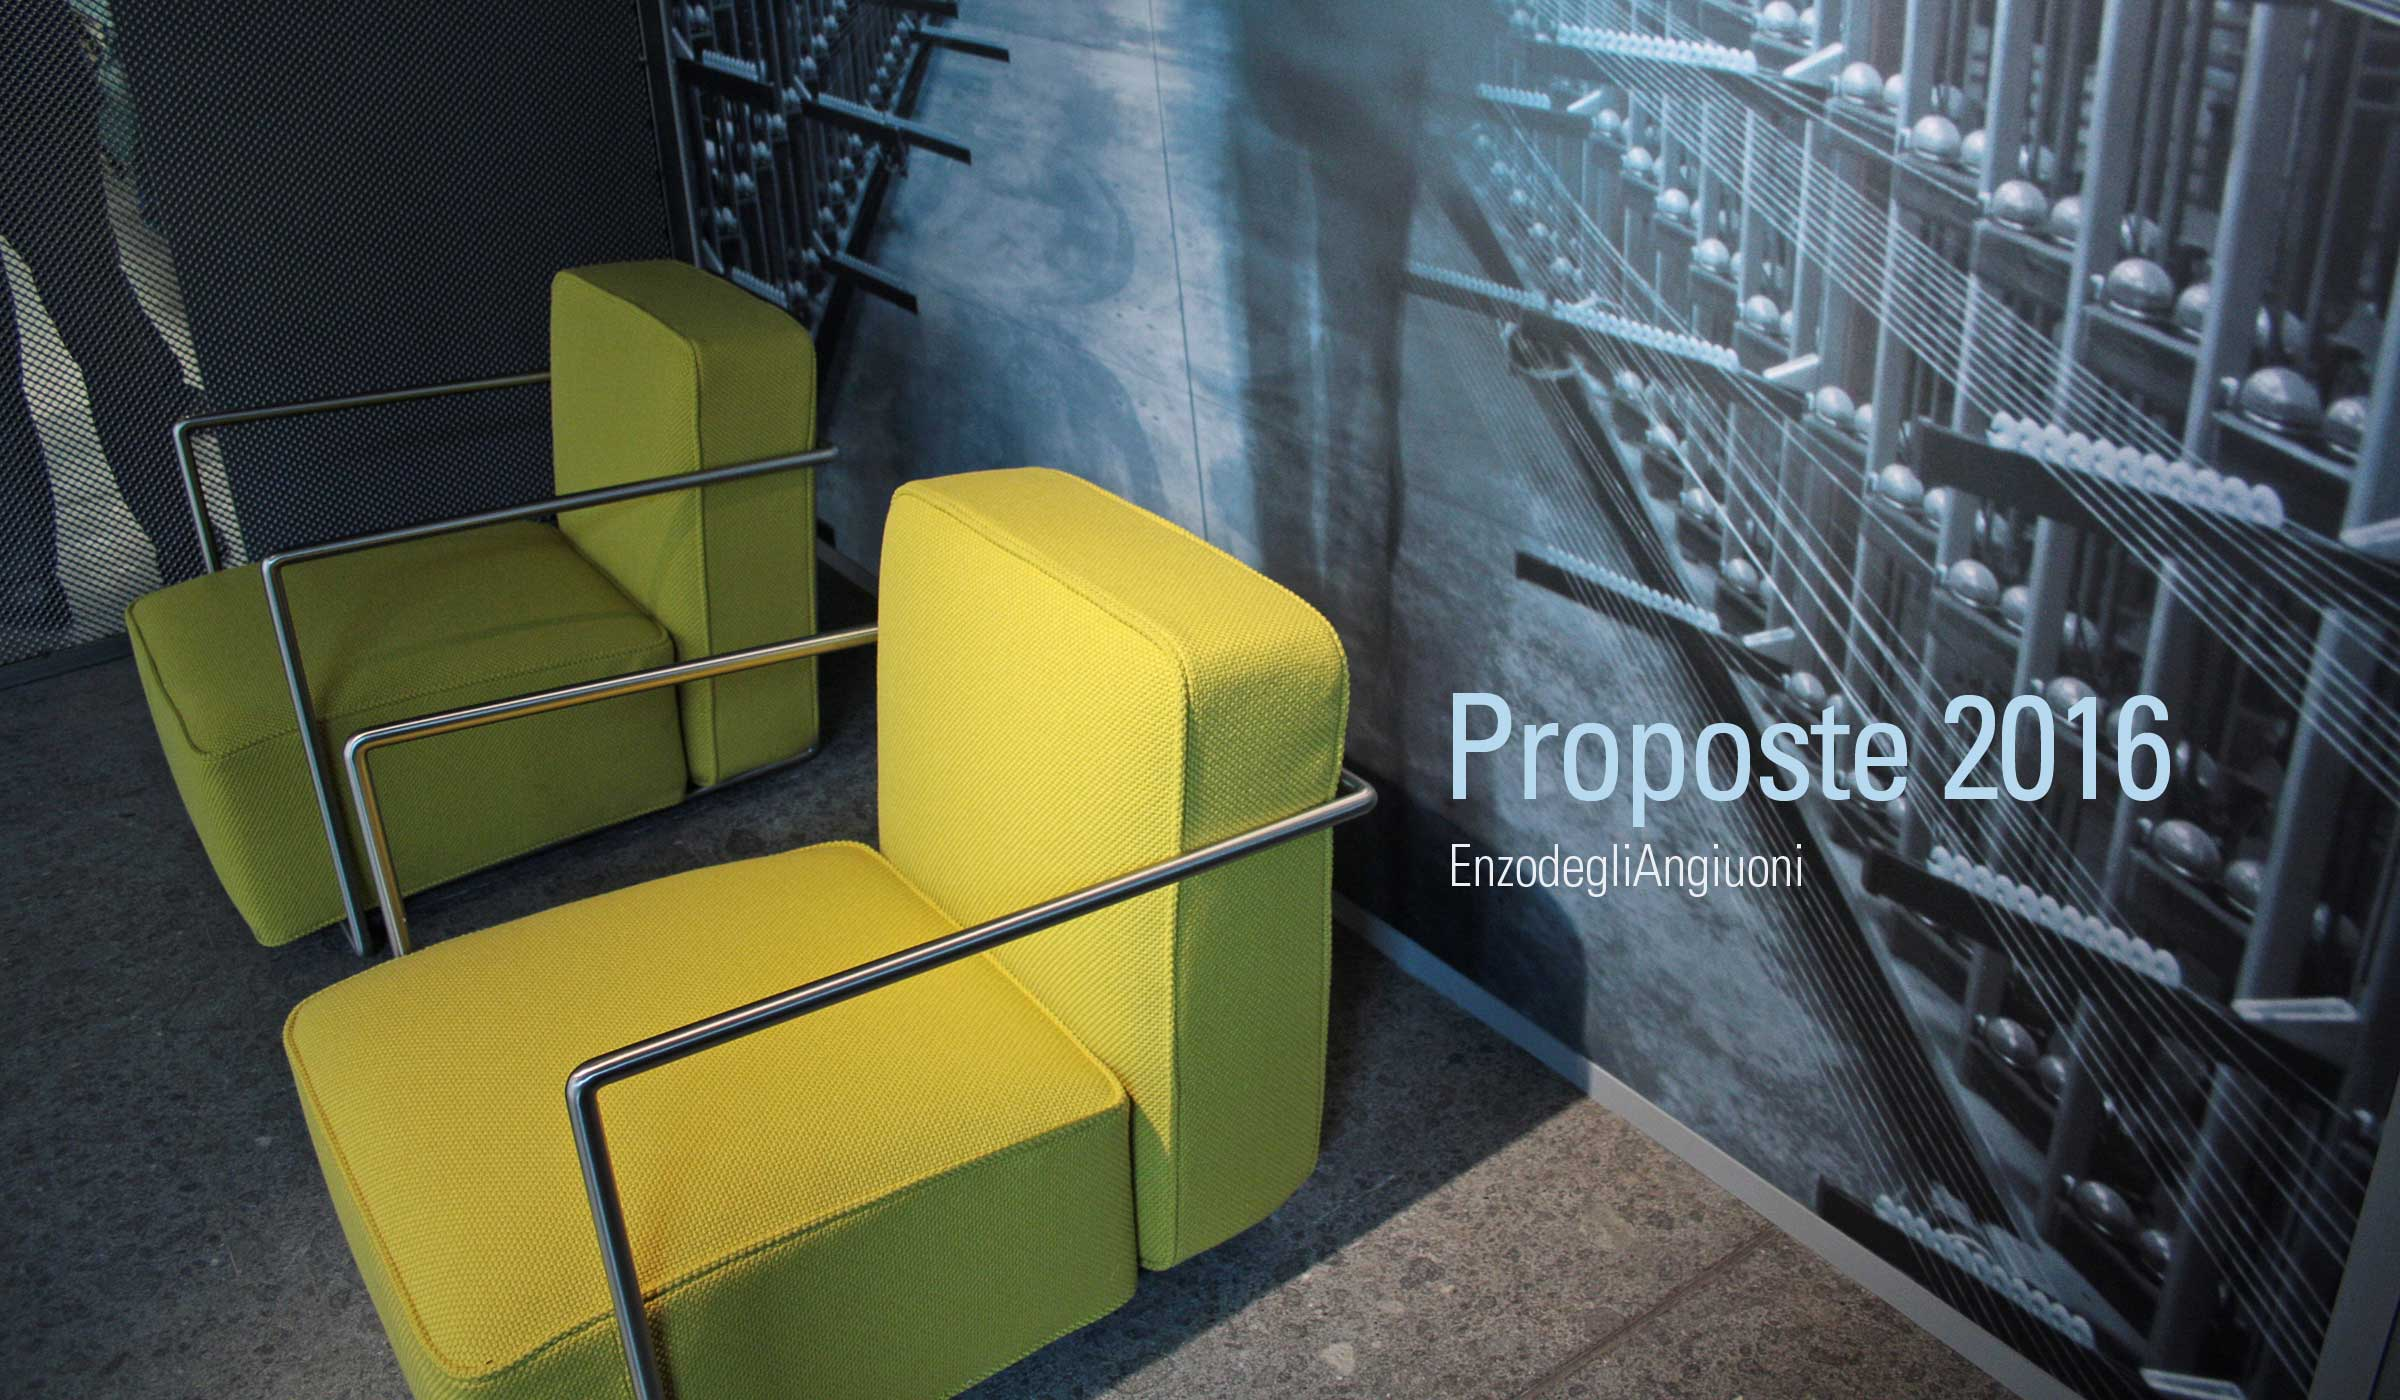 eda-proposte-2016-stand-px2400x1400-01-web